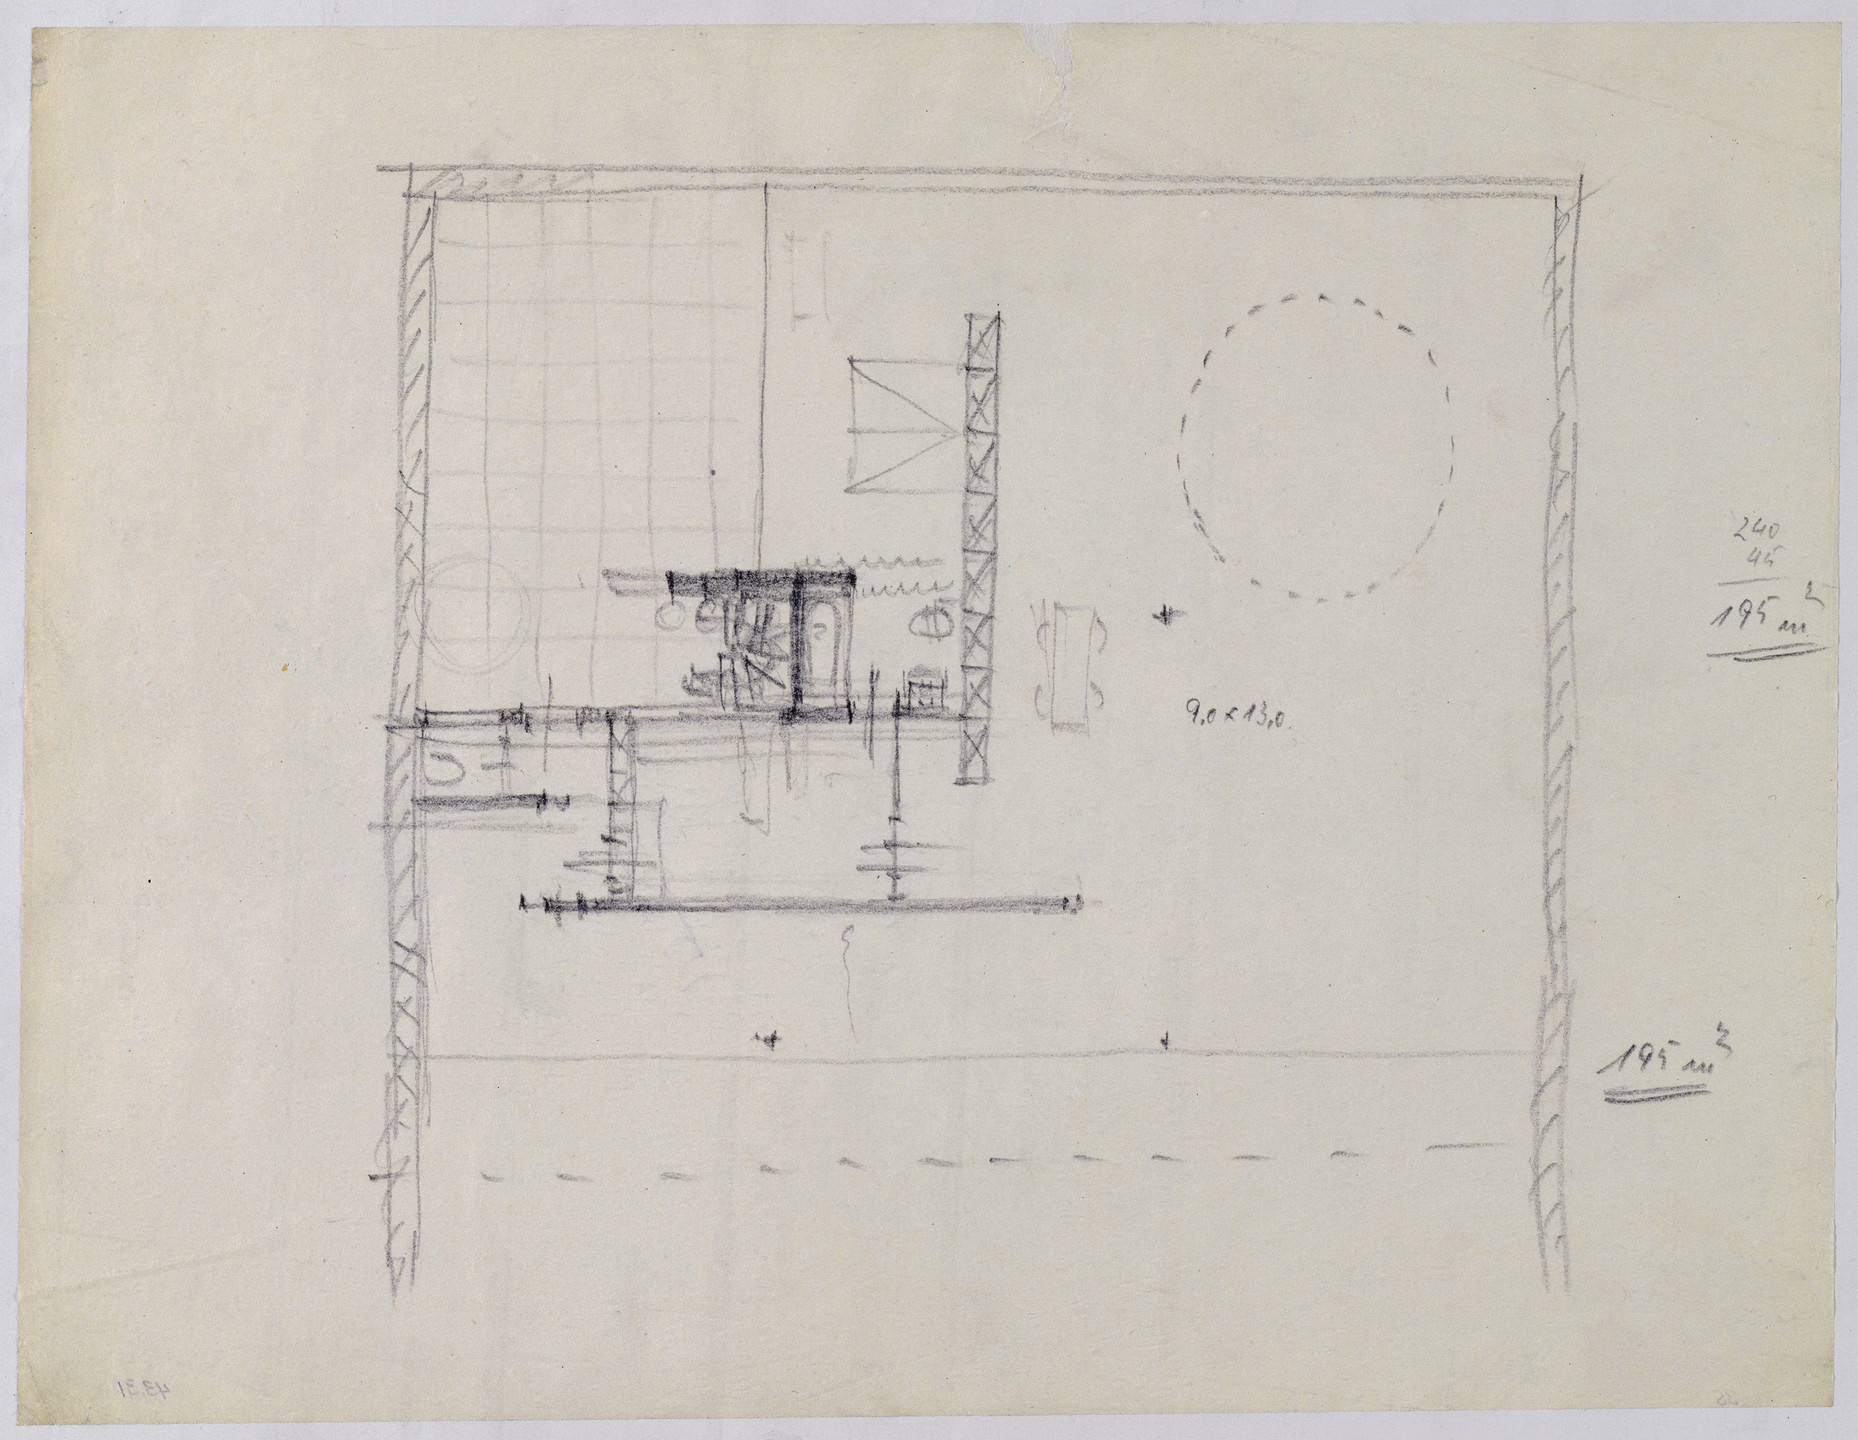 Ludwig Mies van der Rohe. Hubbe House Project, Magdeburg, Germany (Plan sketch). 1934-1935